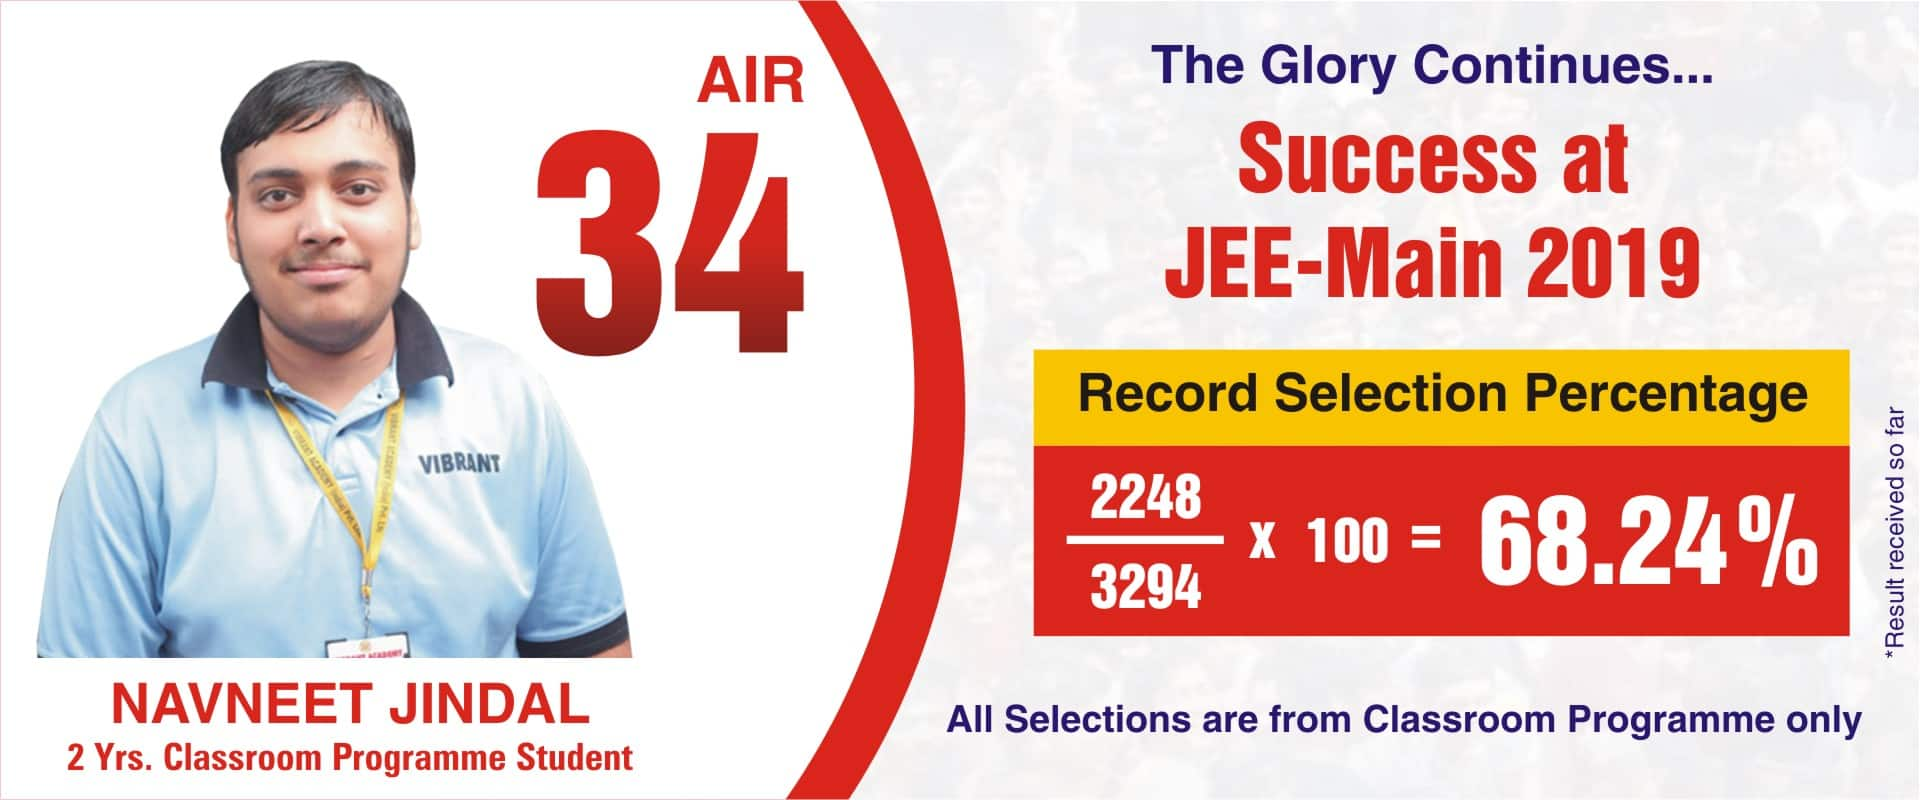 JEE MAIN RESULT IMAGE